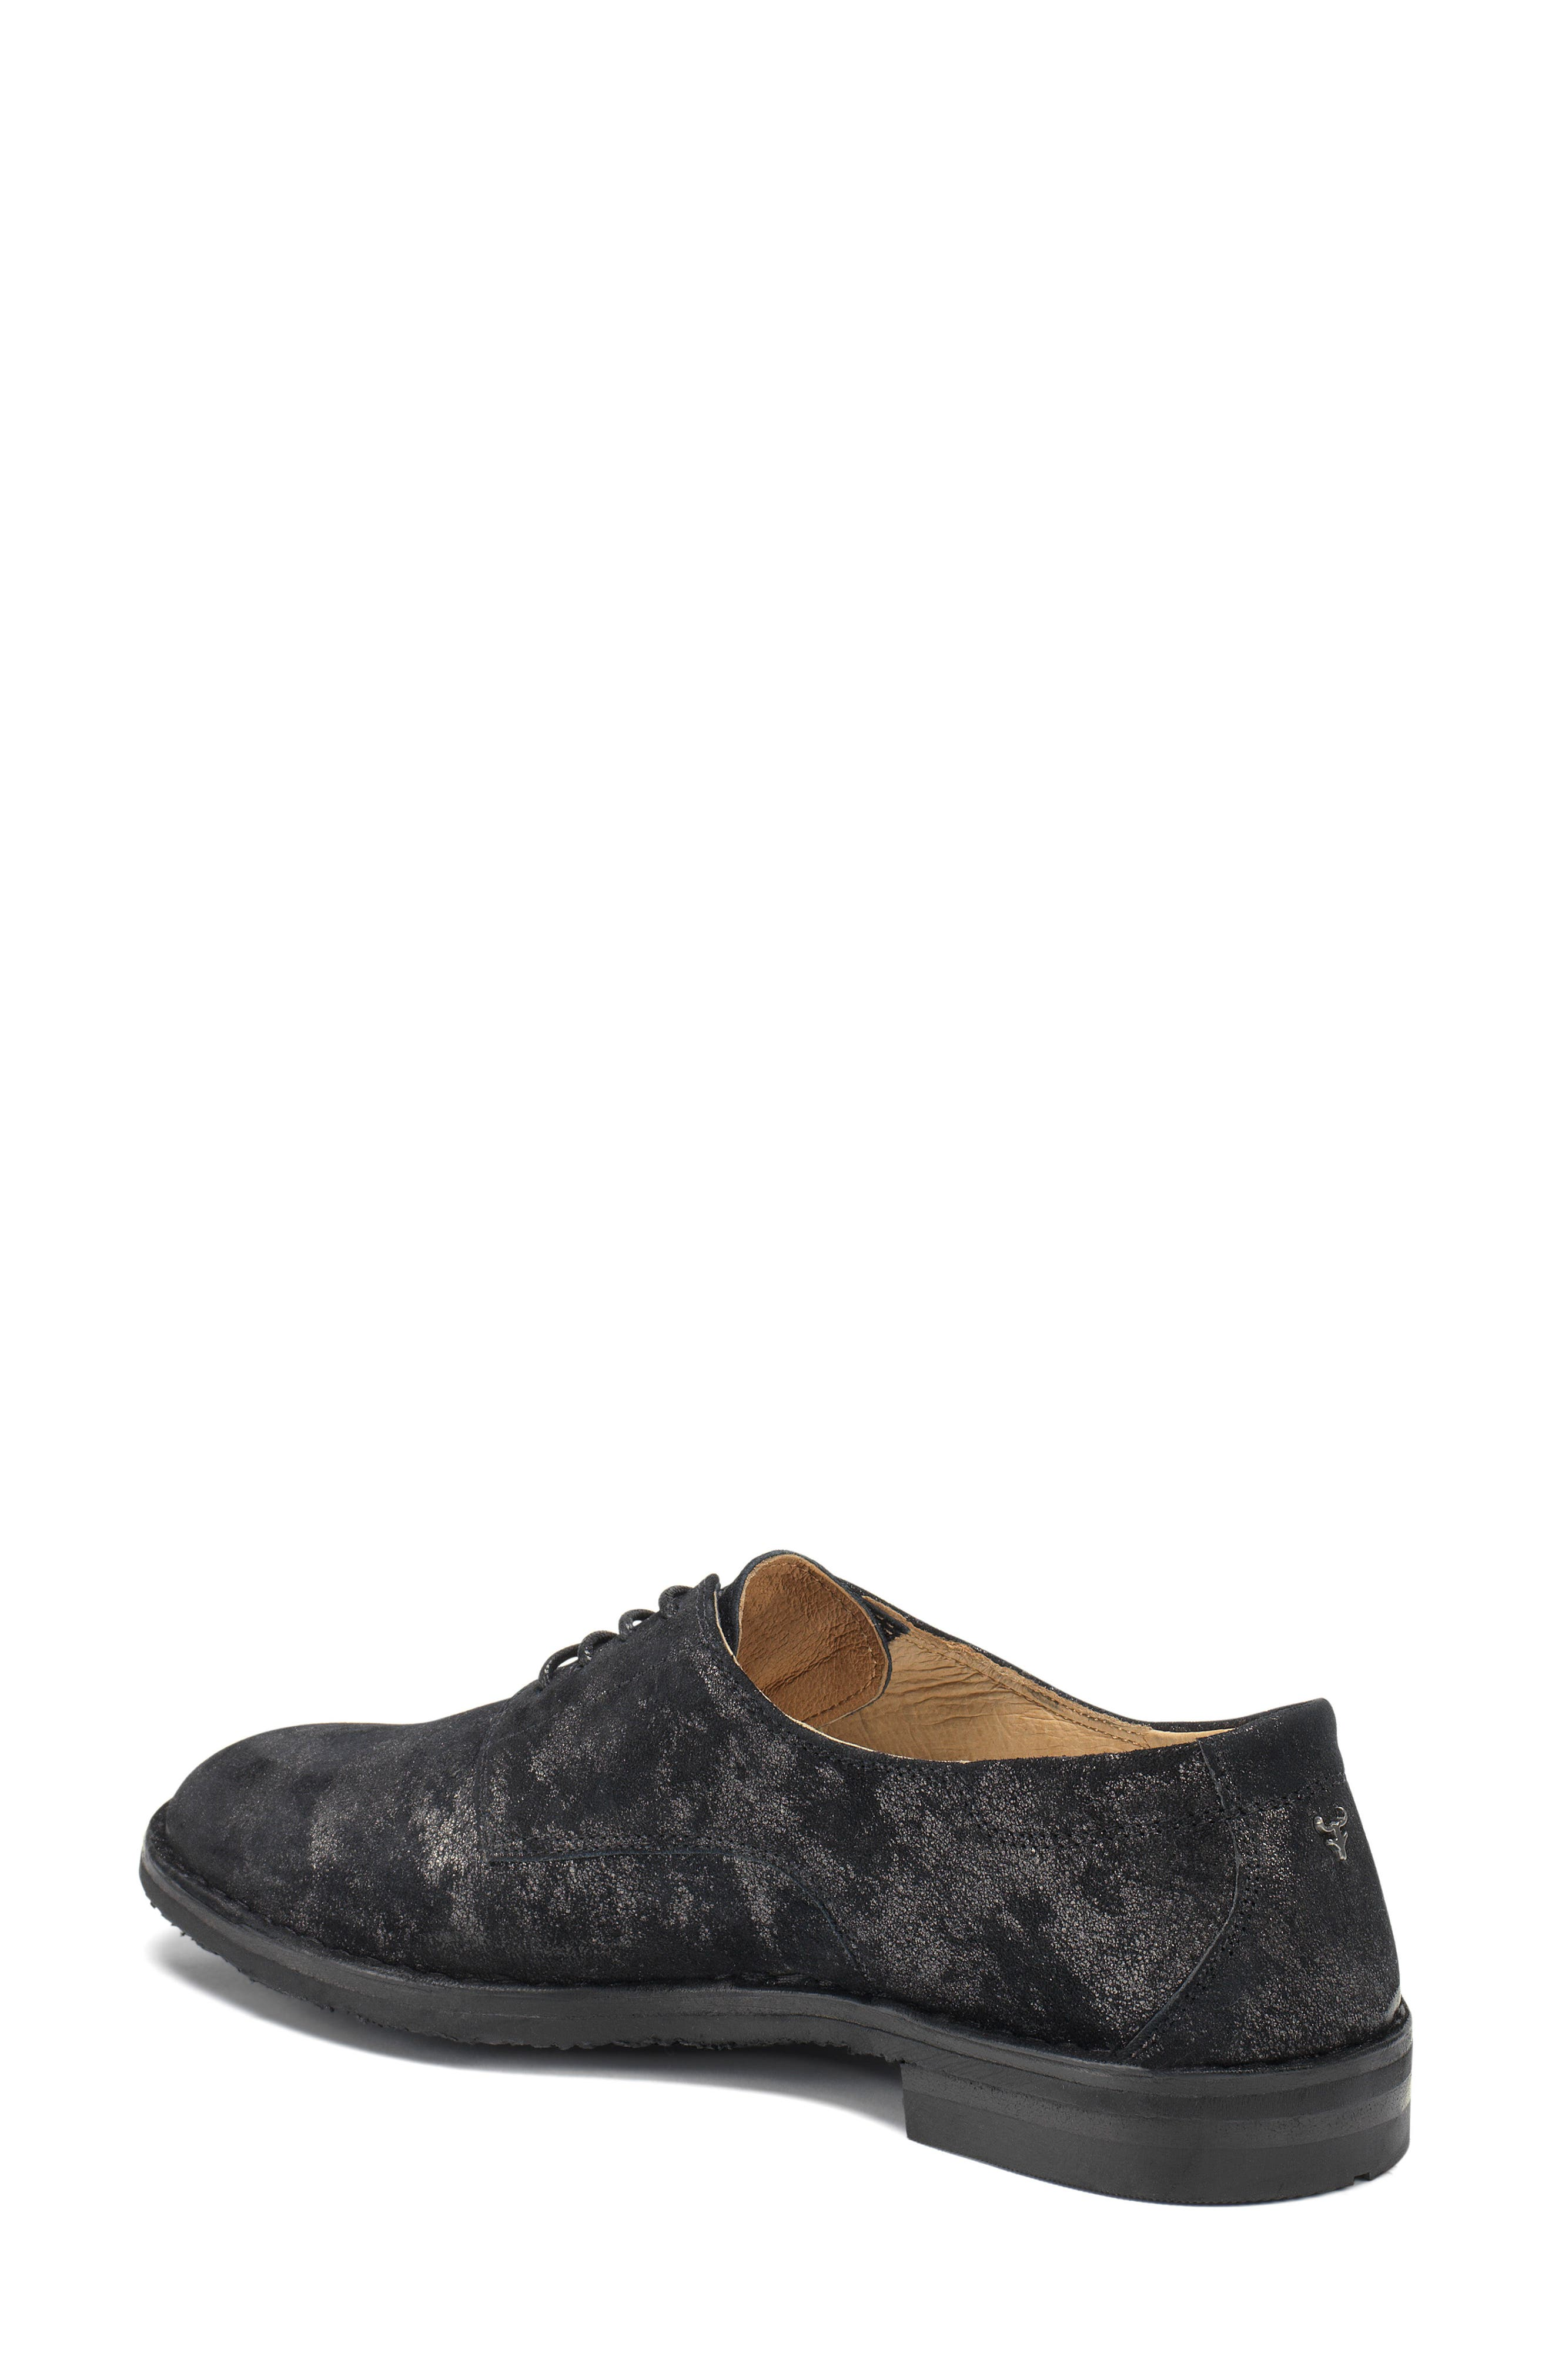 'Ana' Metallic Leather Oxford,                             Alternate thumbnail 2, color,                             BLACK SUEDE